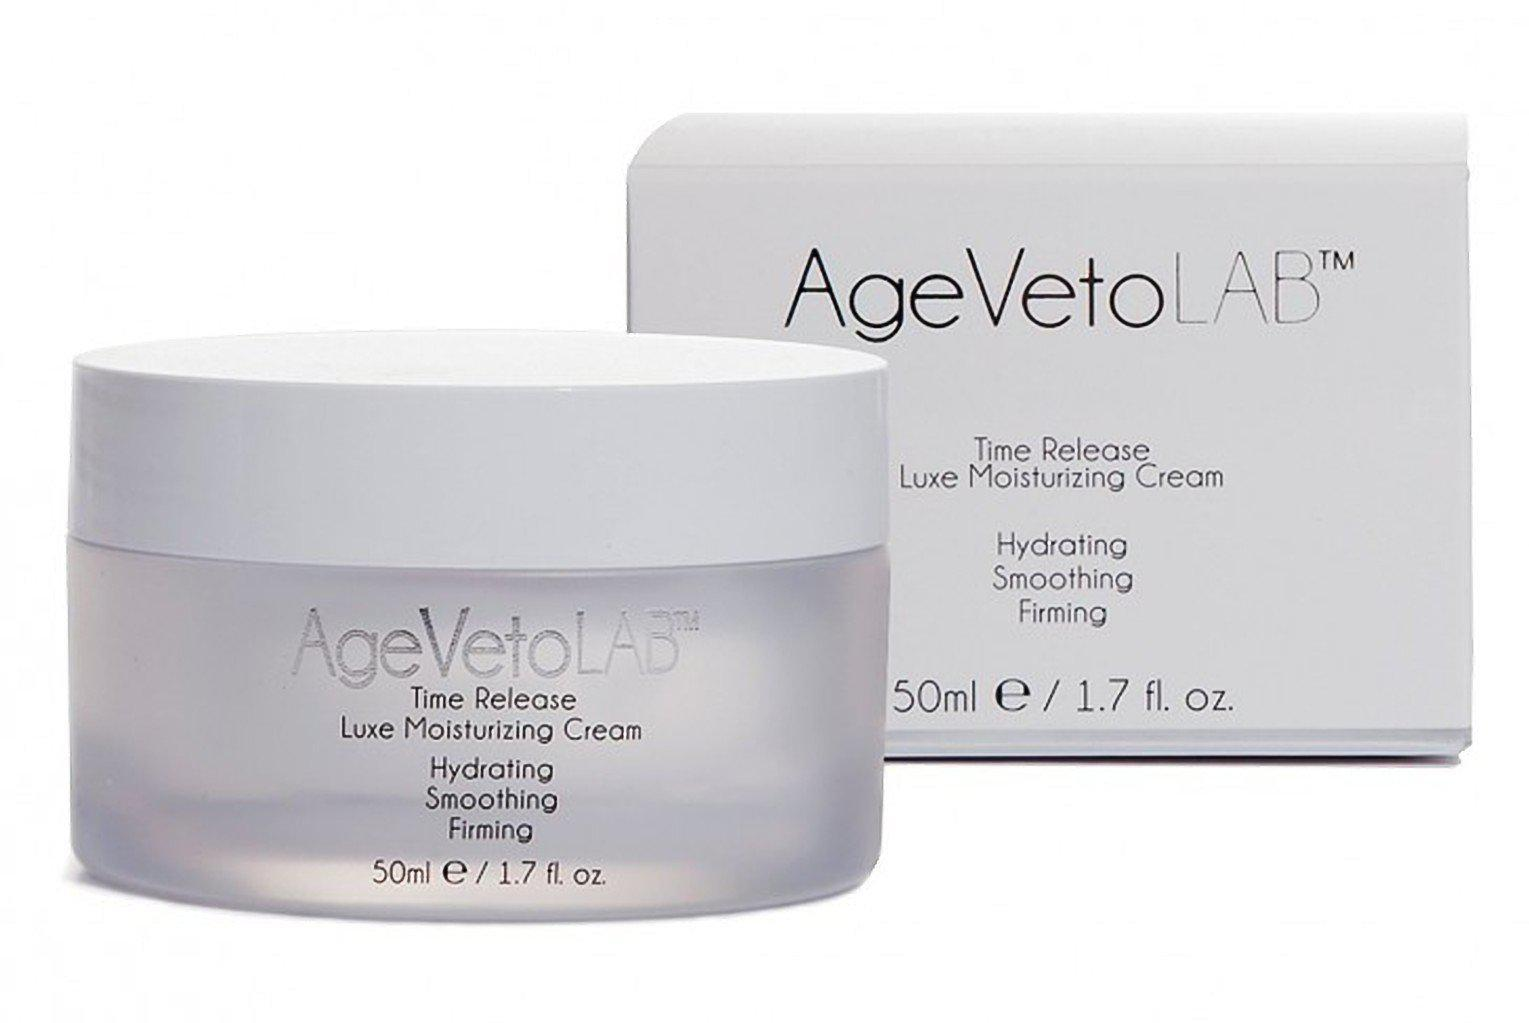 Day and Night Face Cream Time Release Moisturizer Skin Hydration Minimize Wrinkles  - Medactiveshop